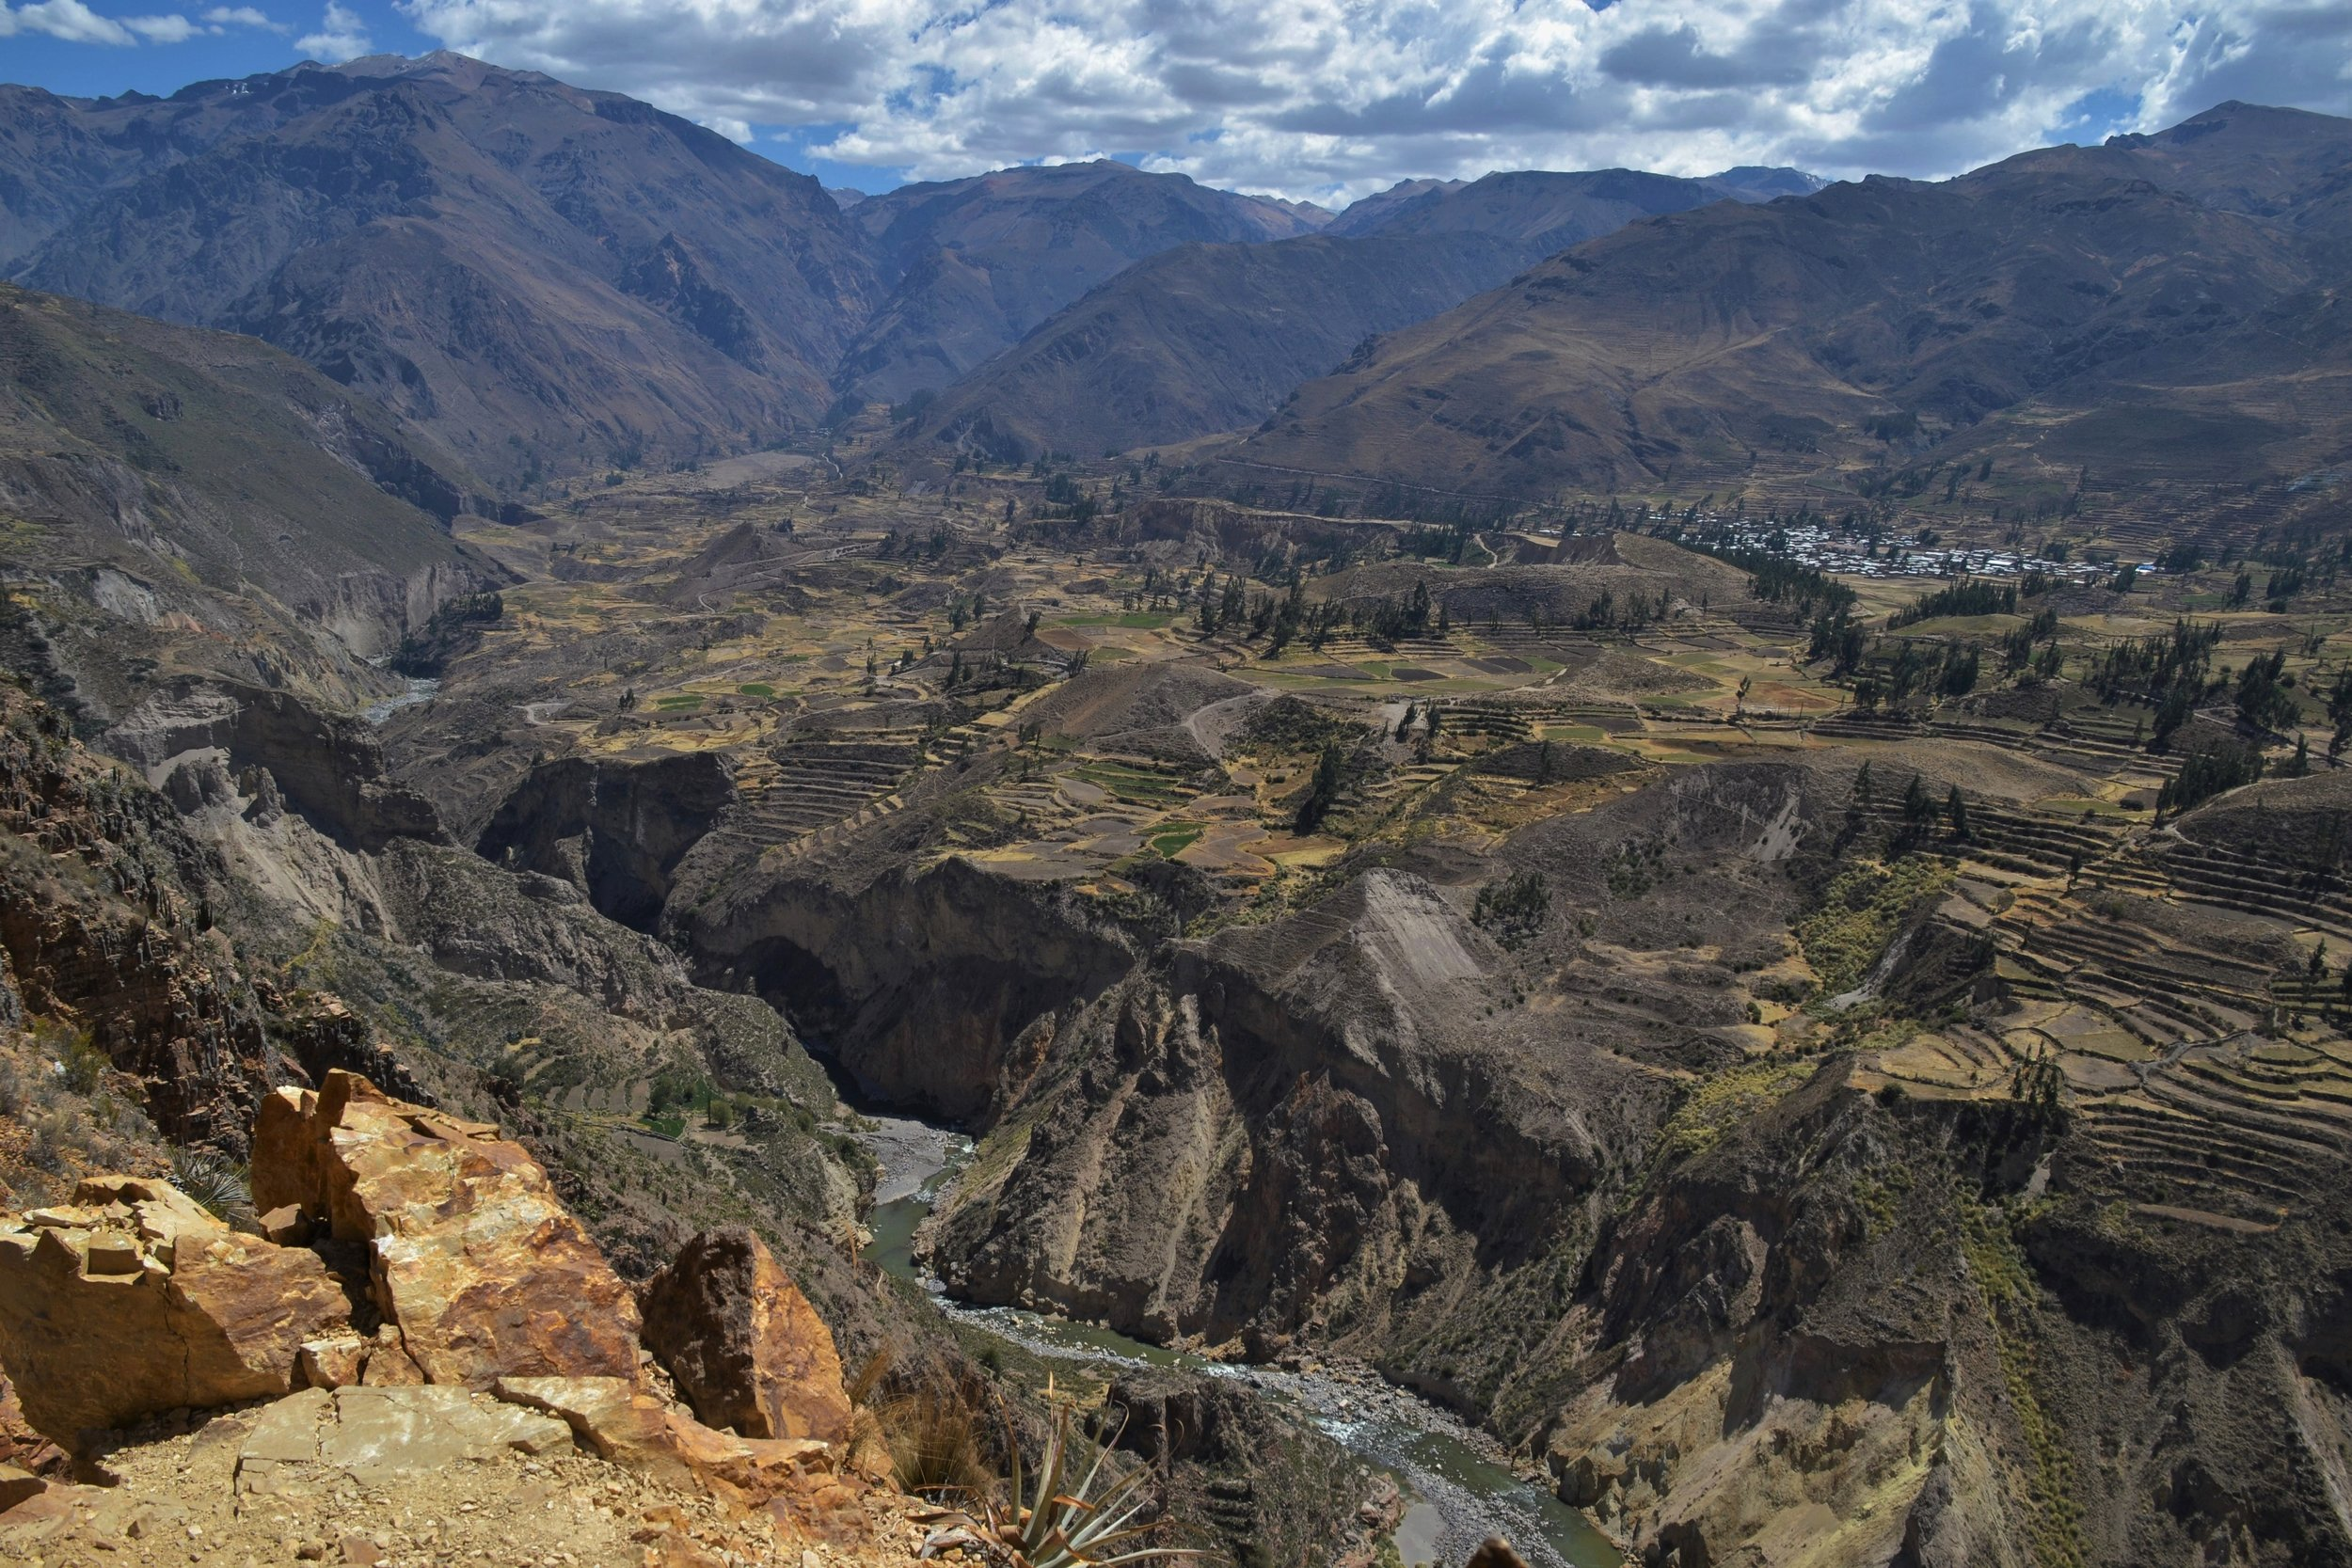 Elsewhere in the Colca Canyon